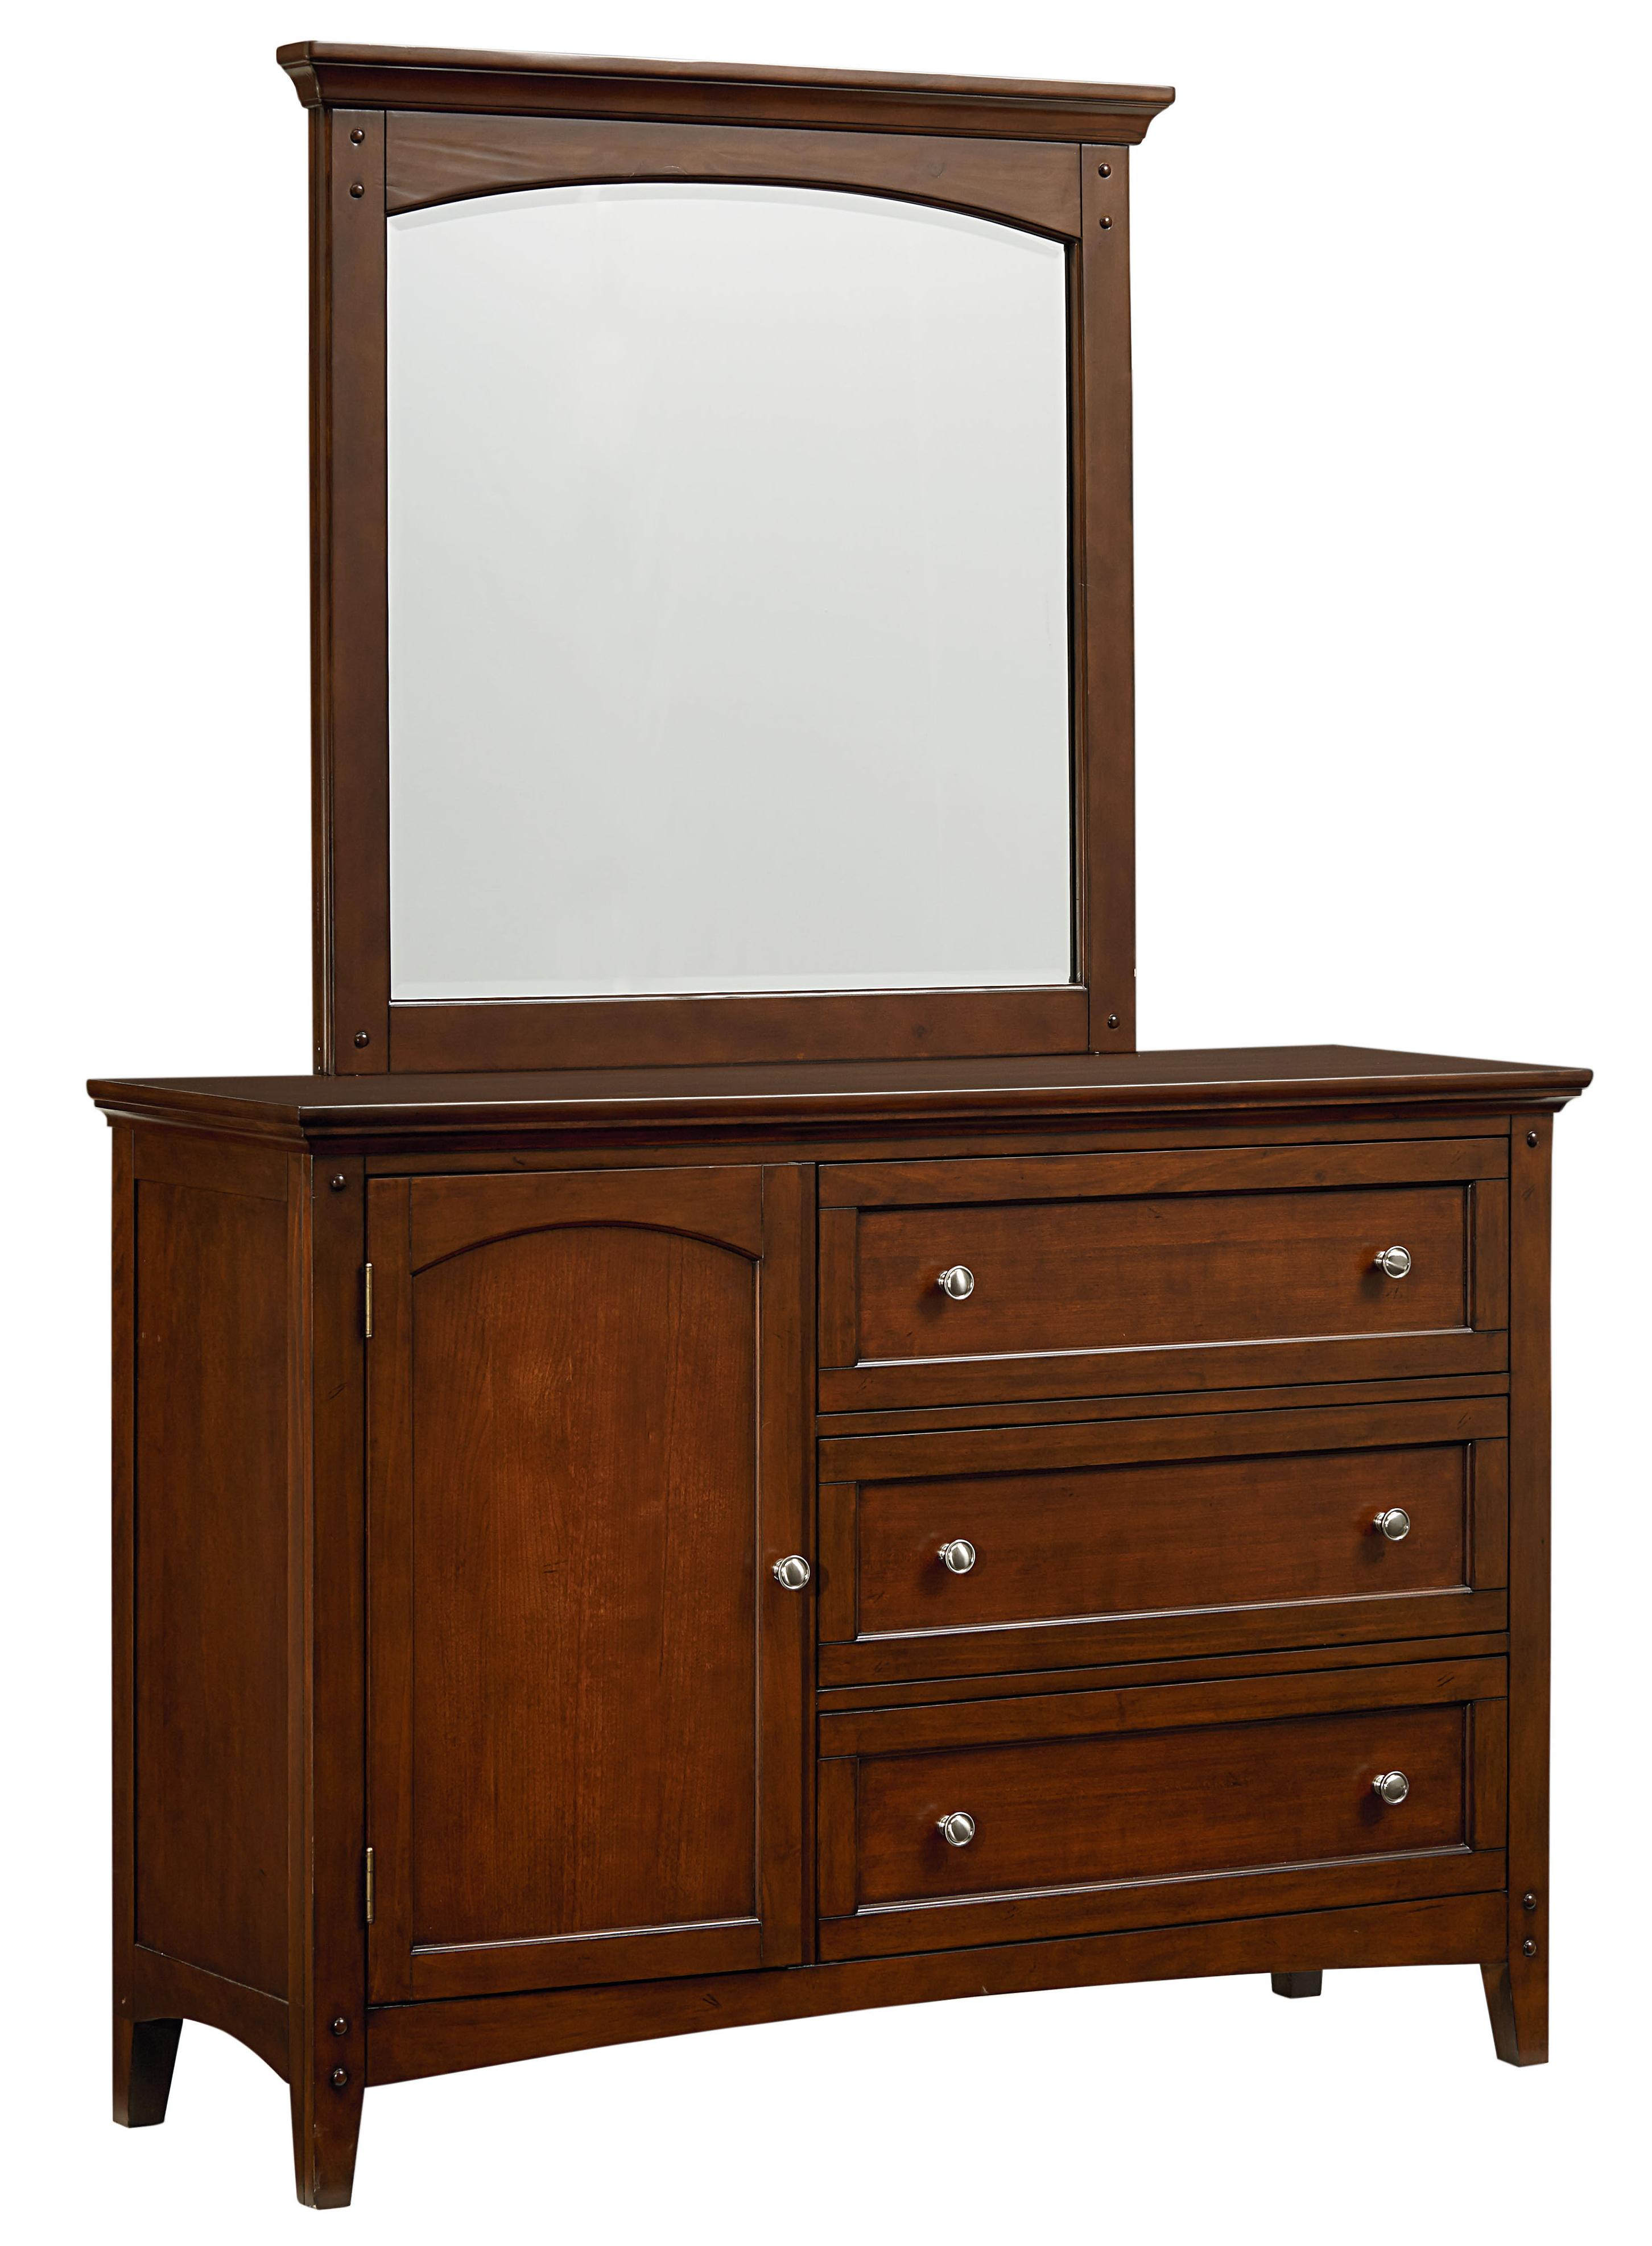 Casual Youth Dresser With 3 Drawers And A Door And Mirror